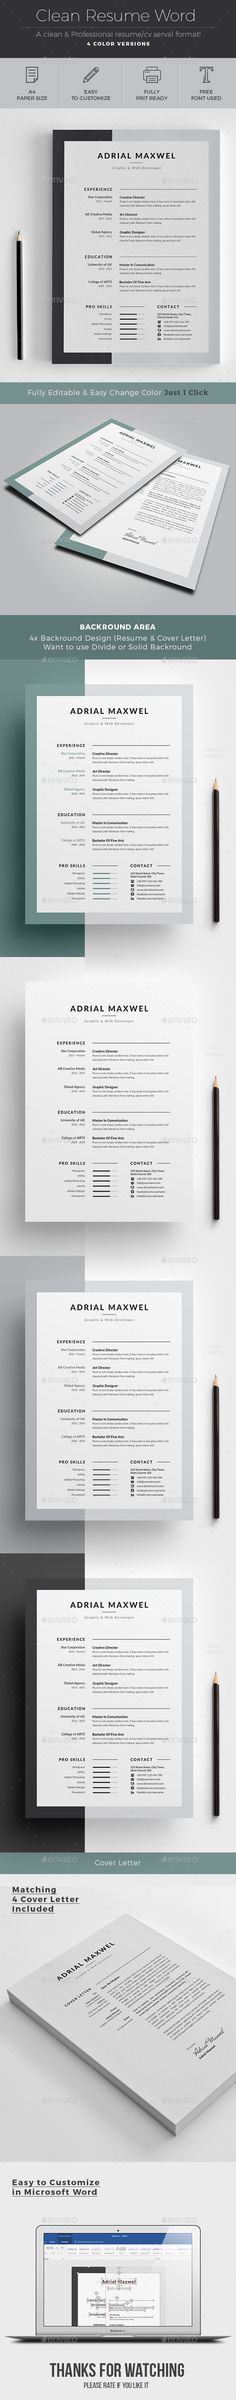 Resume Free cover letter, Professional resume template and - new resume format free download